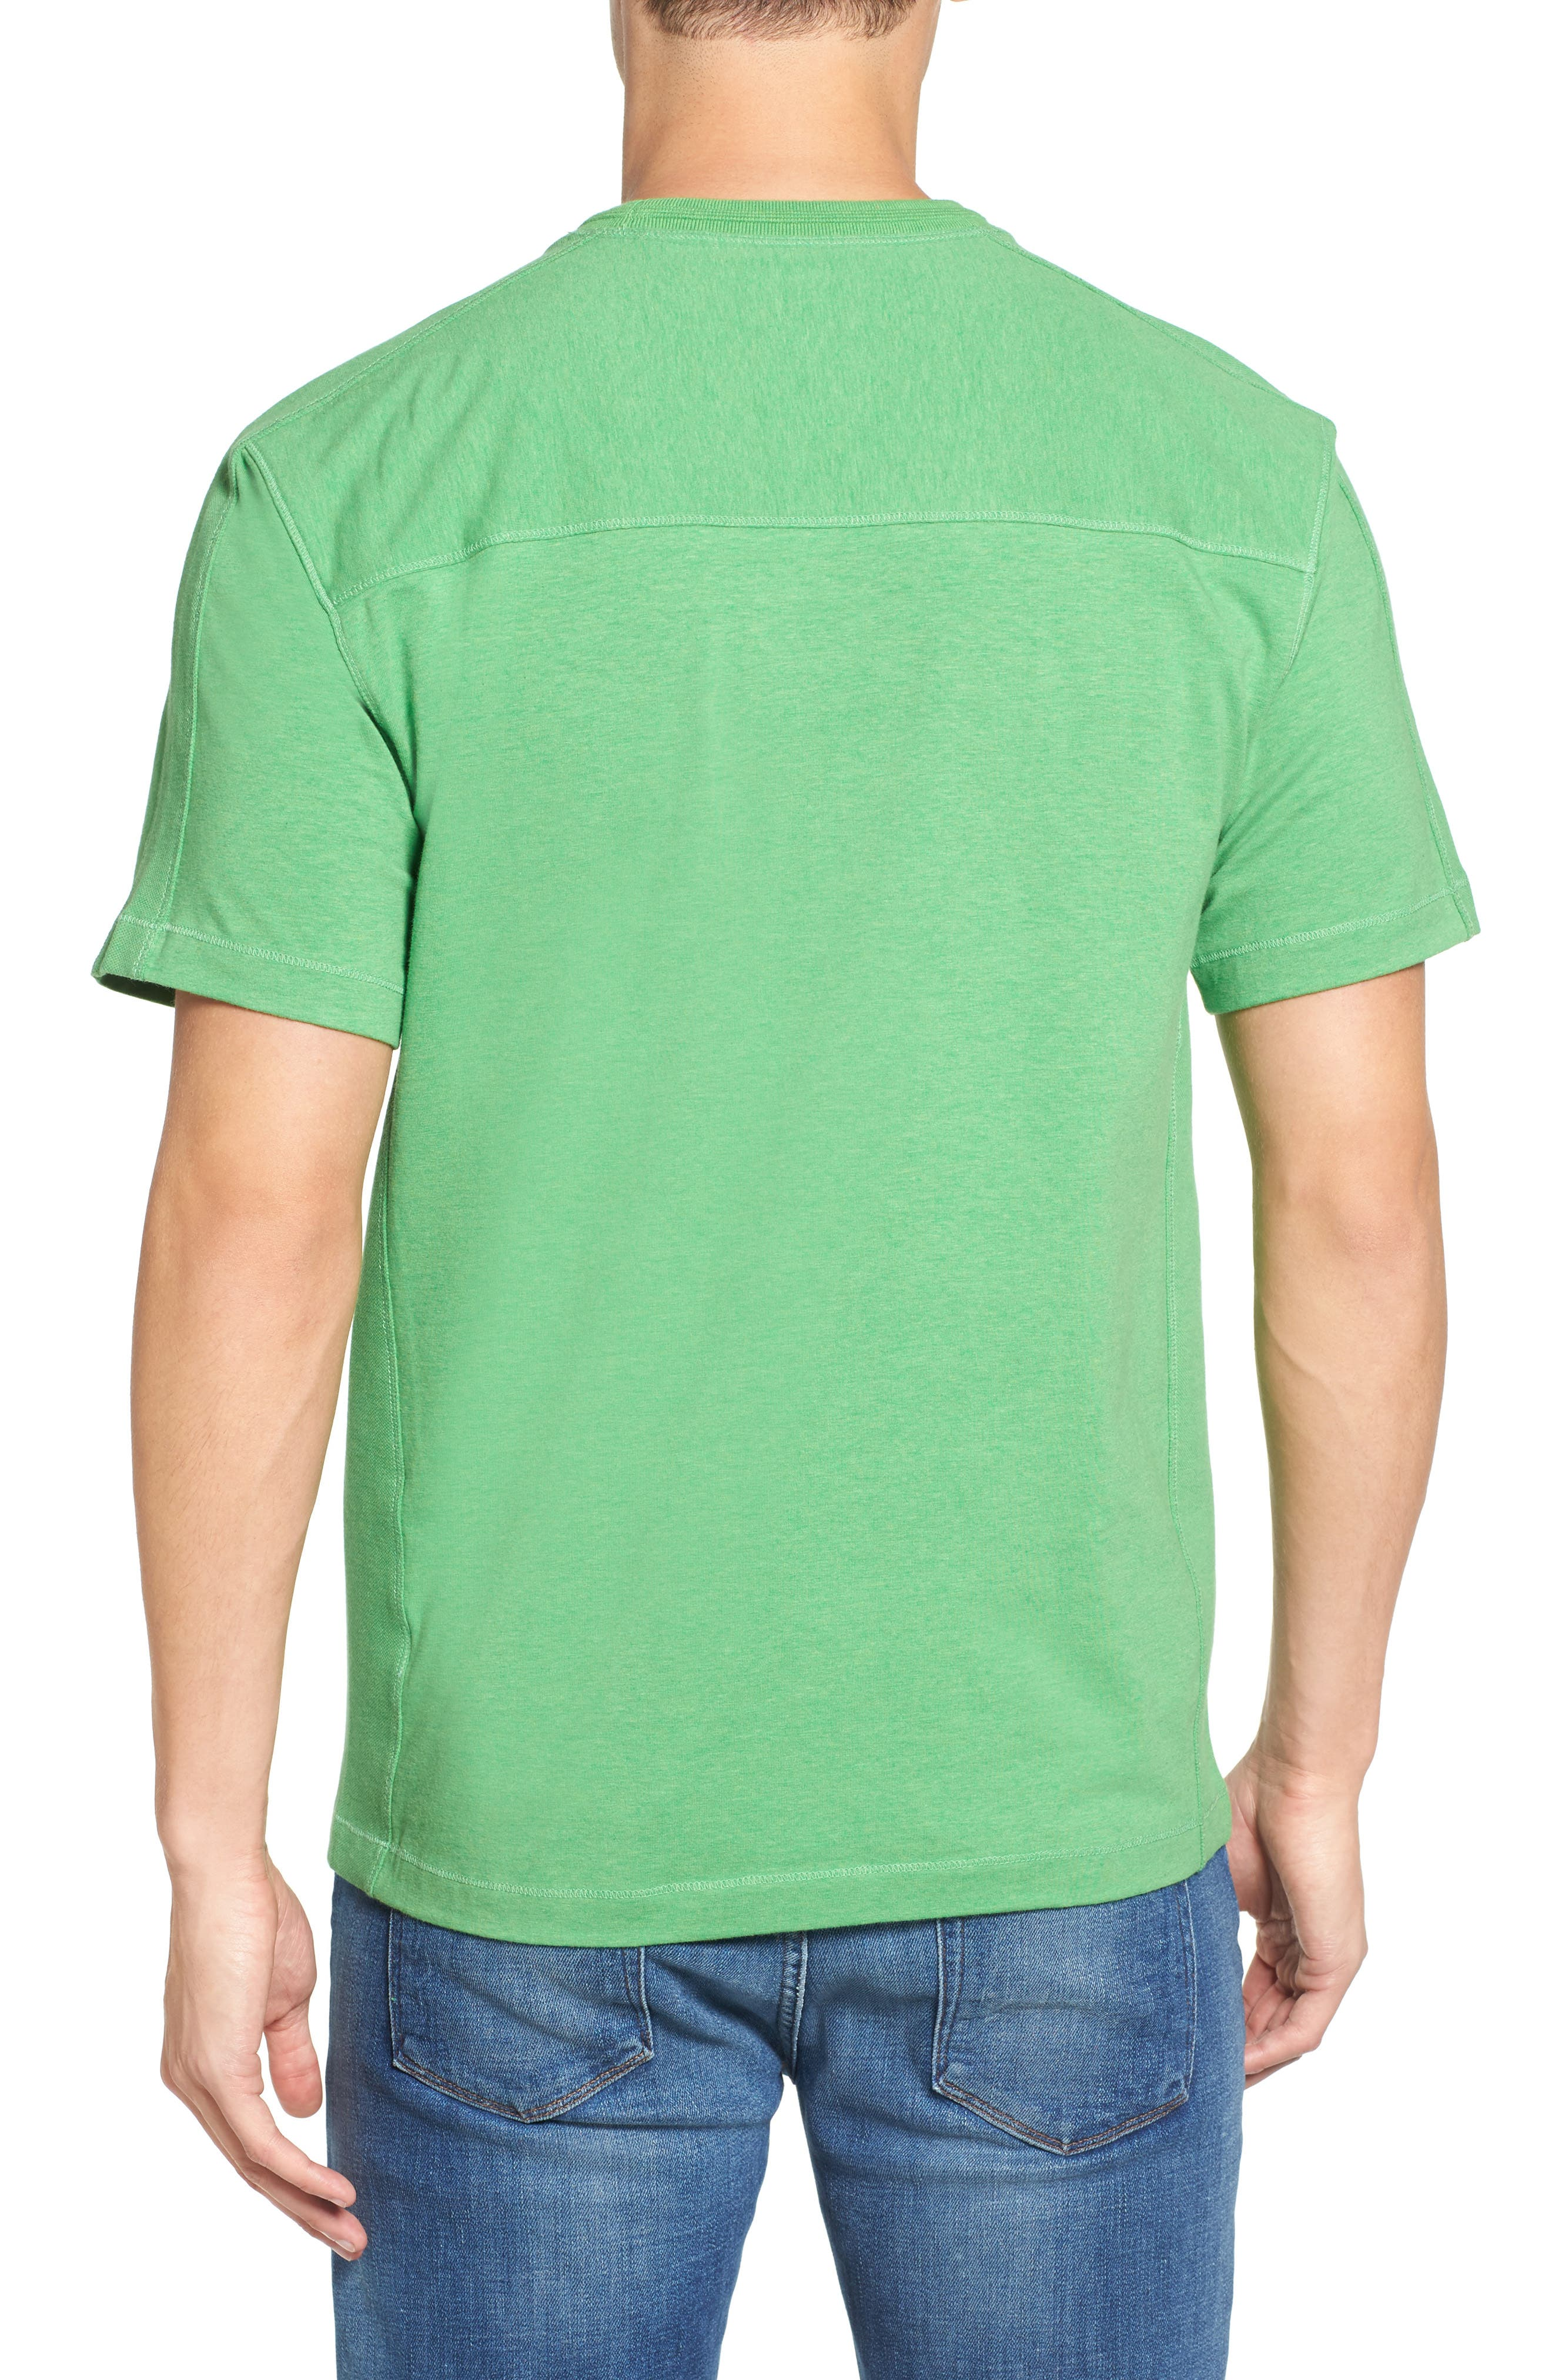 Steve Stretch Jersey T-Shirt,                             Alternate thumbnail 7, color,